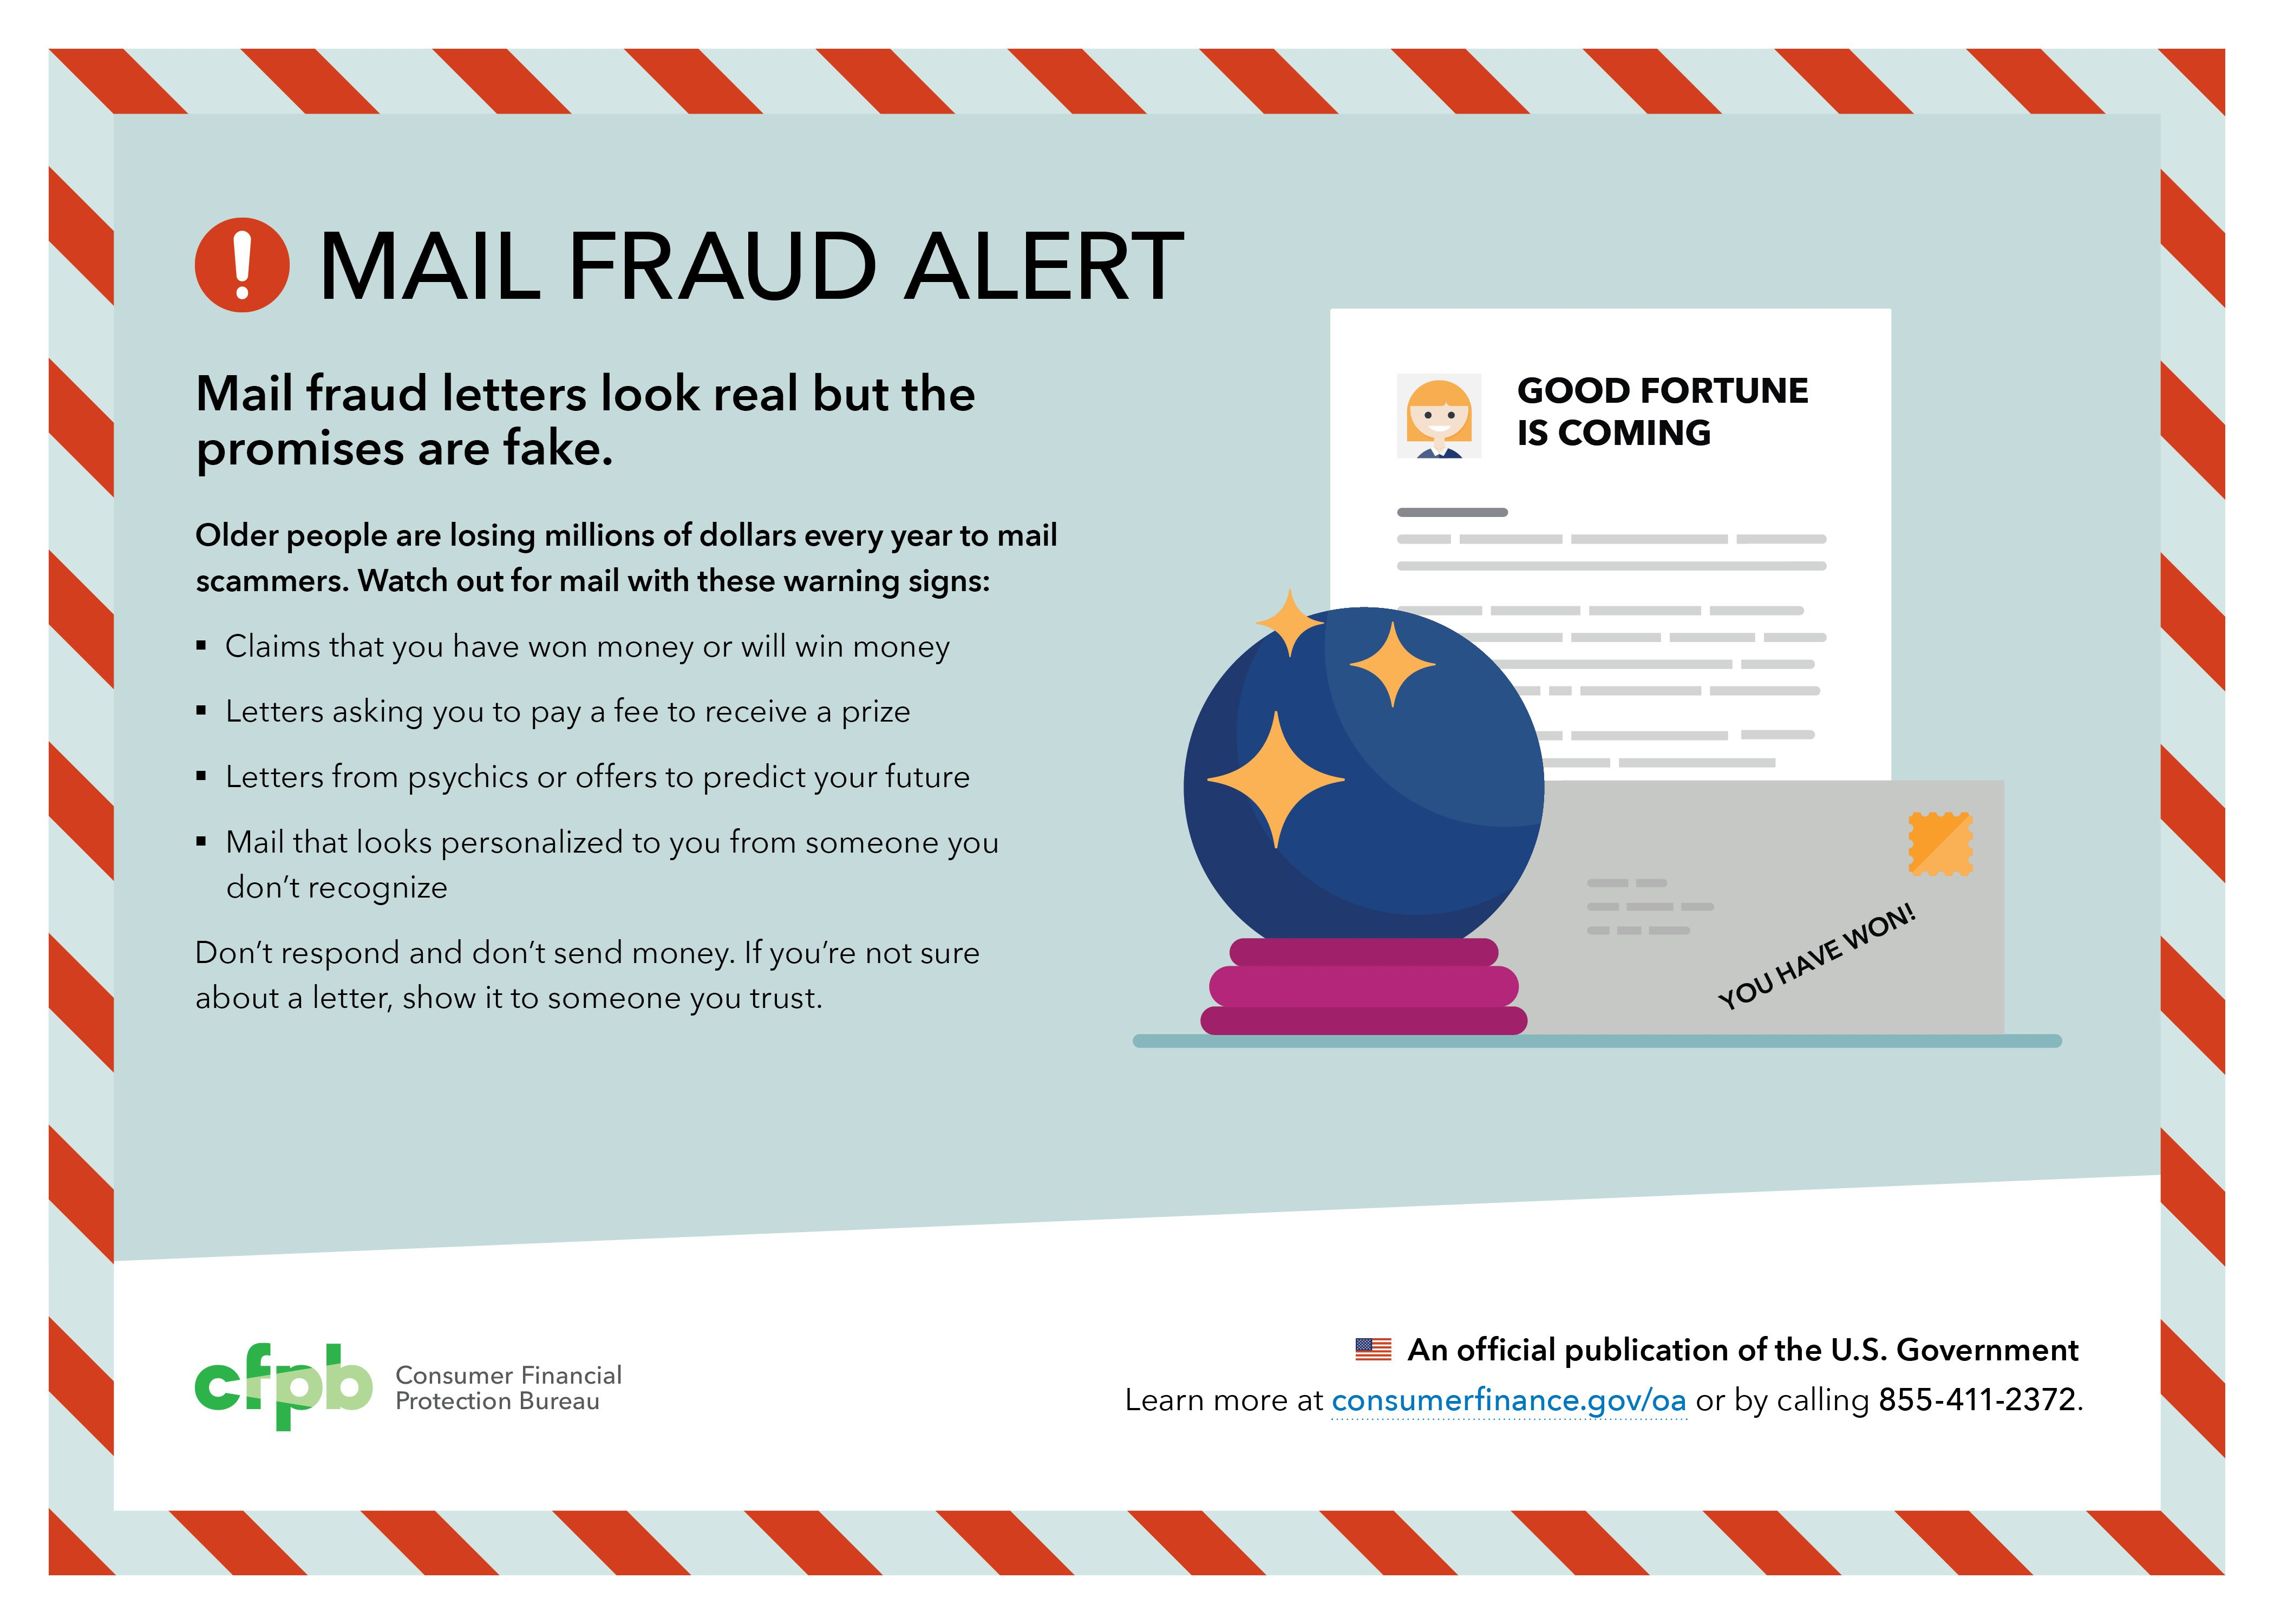 Placemat mail fraud alert